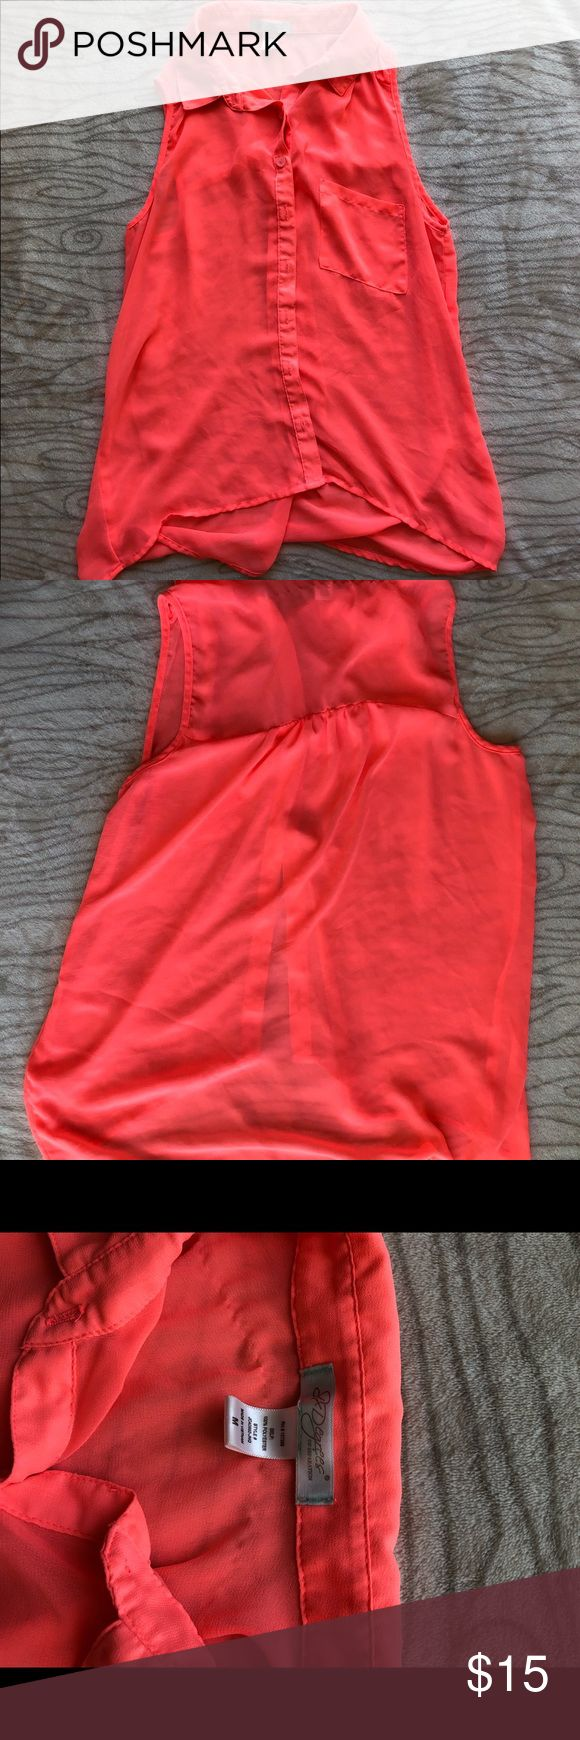 Sheer Neon sleeveless top- high-low style Sheer, orange neon top. Sleeveless, button down. High-low style. Great for summer and a pair of leggings! Worn once, sticking issue shown in last picture. Tops Button Down Shirts